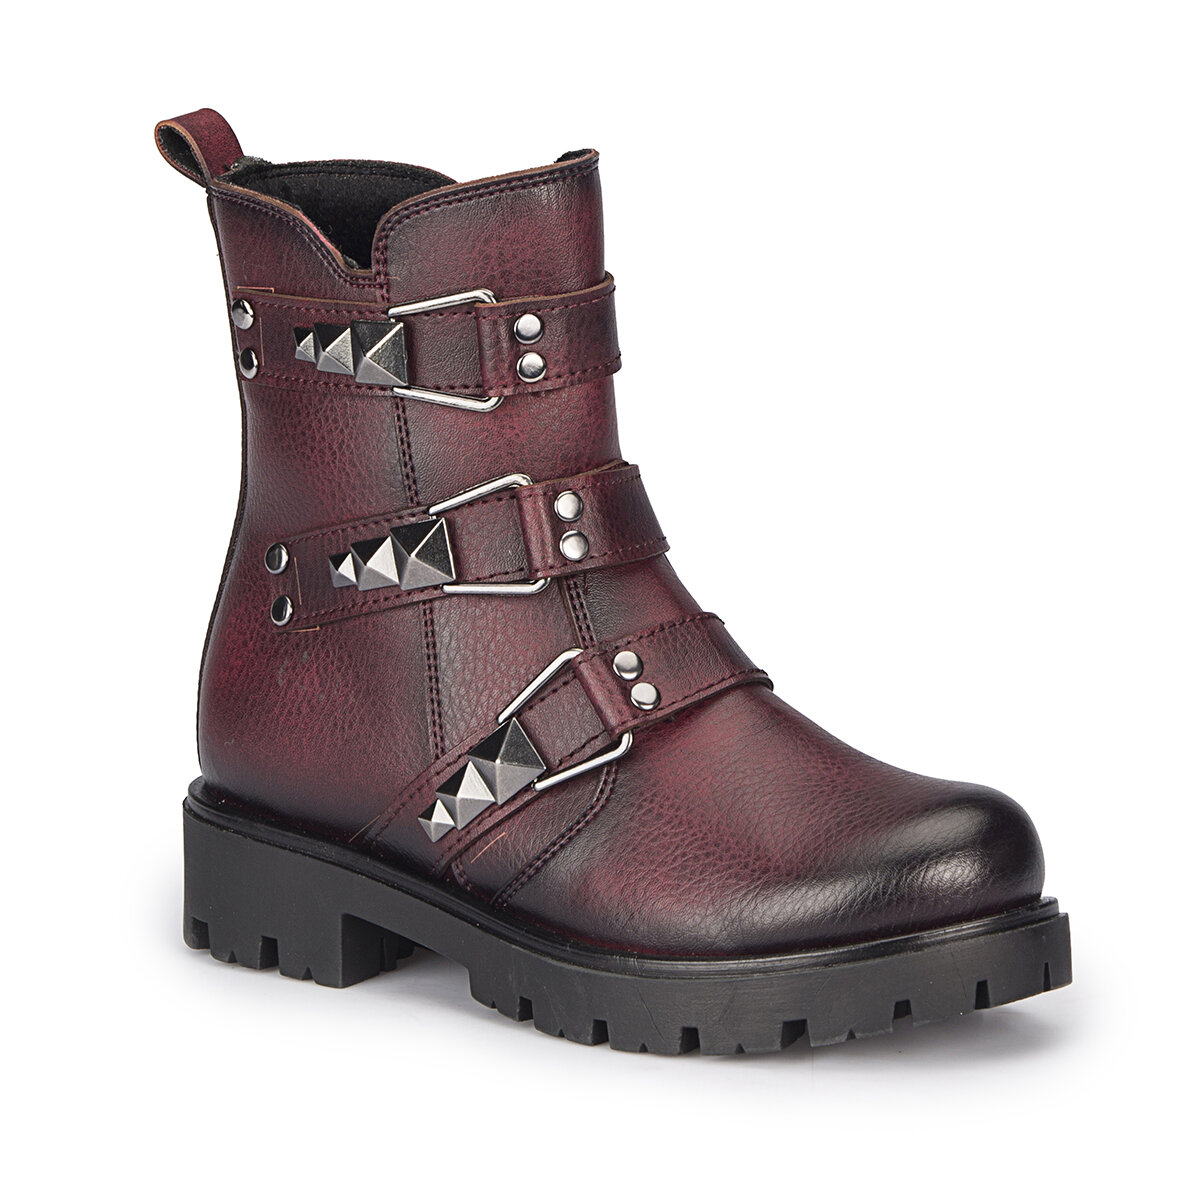 FLO DUKE Burgundy Female Child Boots PINKSTEP